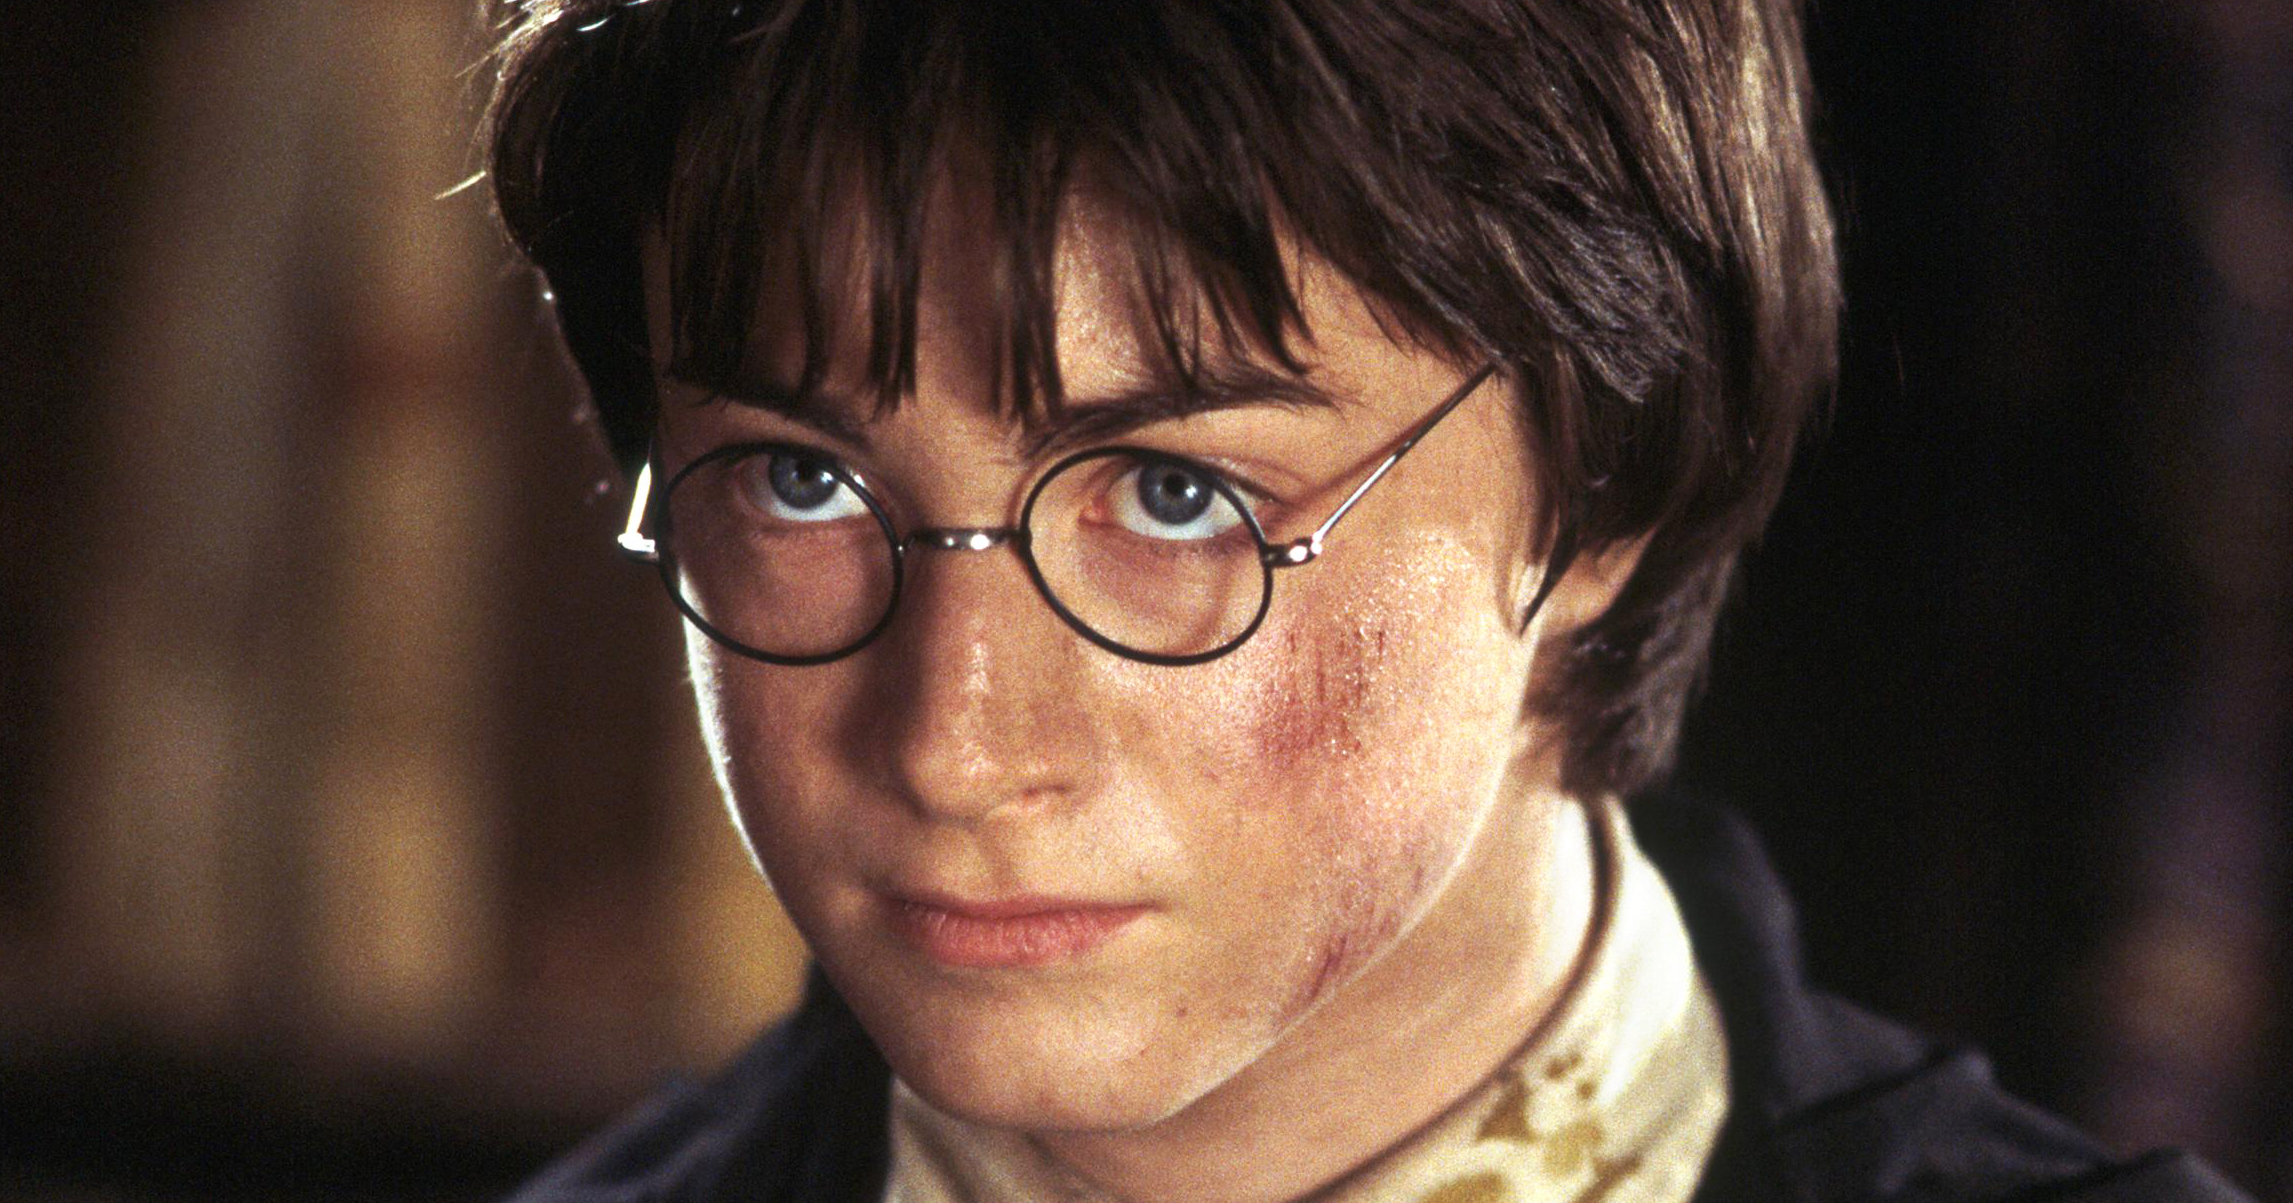 Daniel Radcliffe (Harry Potter) in Warner Bros. Pictures' family adventure film Harry Potter and the Chamber of Secrets.